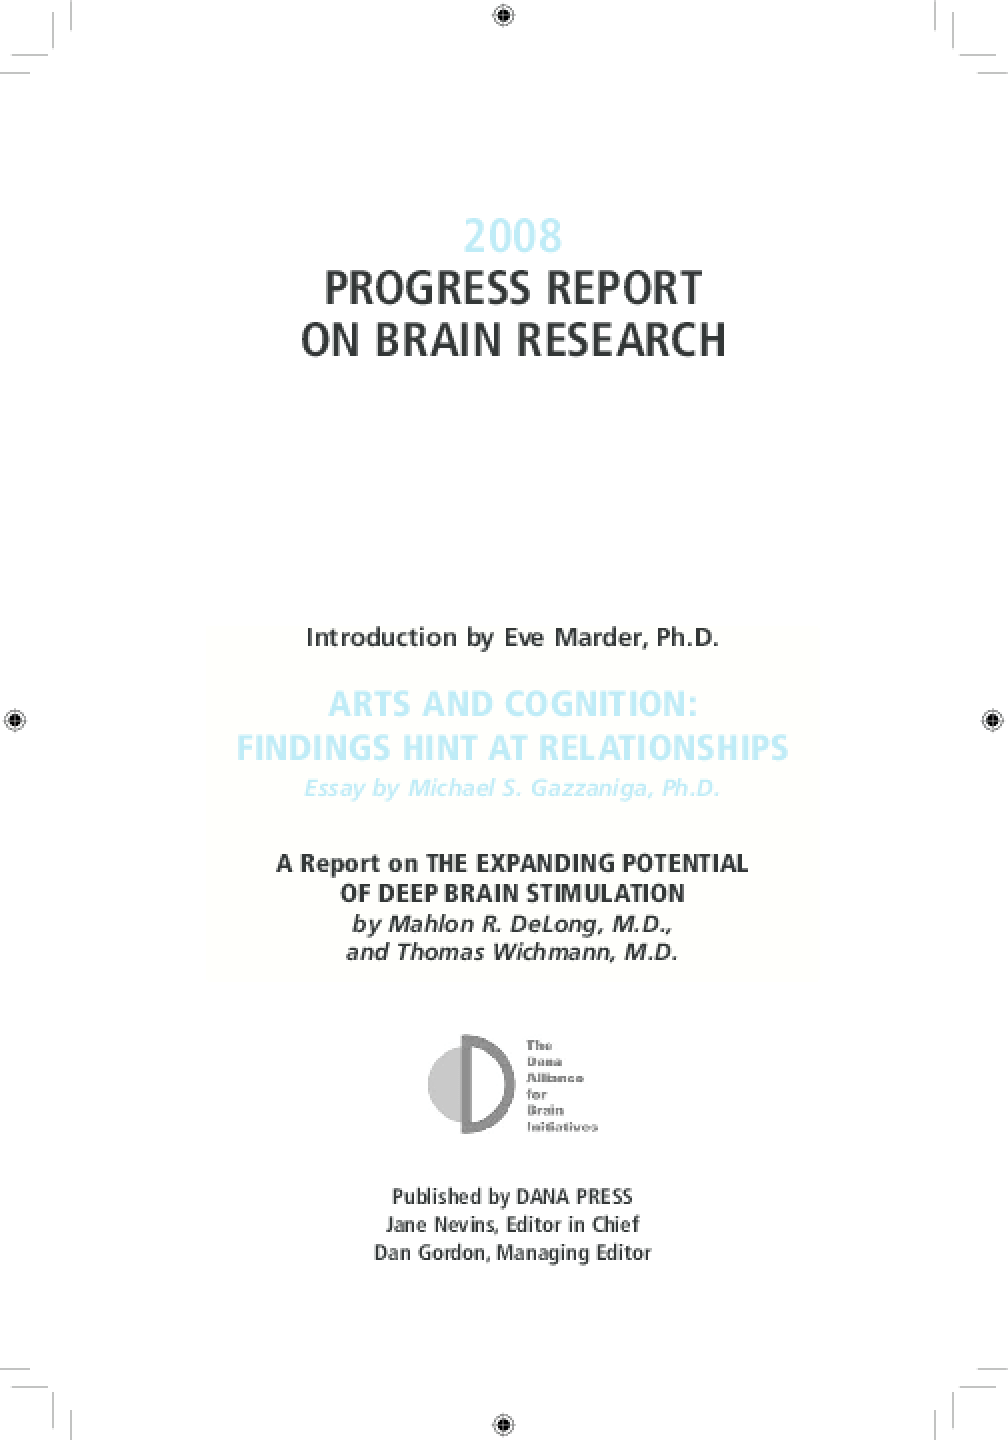 2008 Progress Report on Brain Research